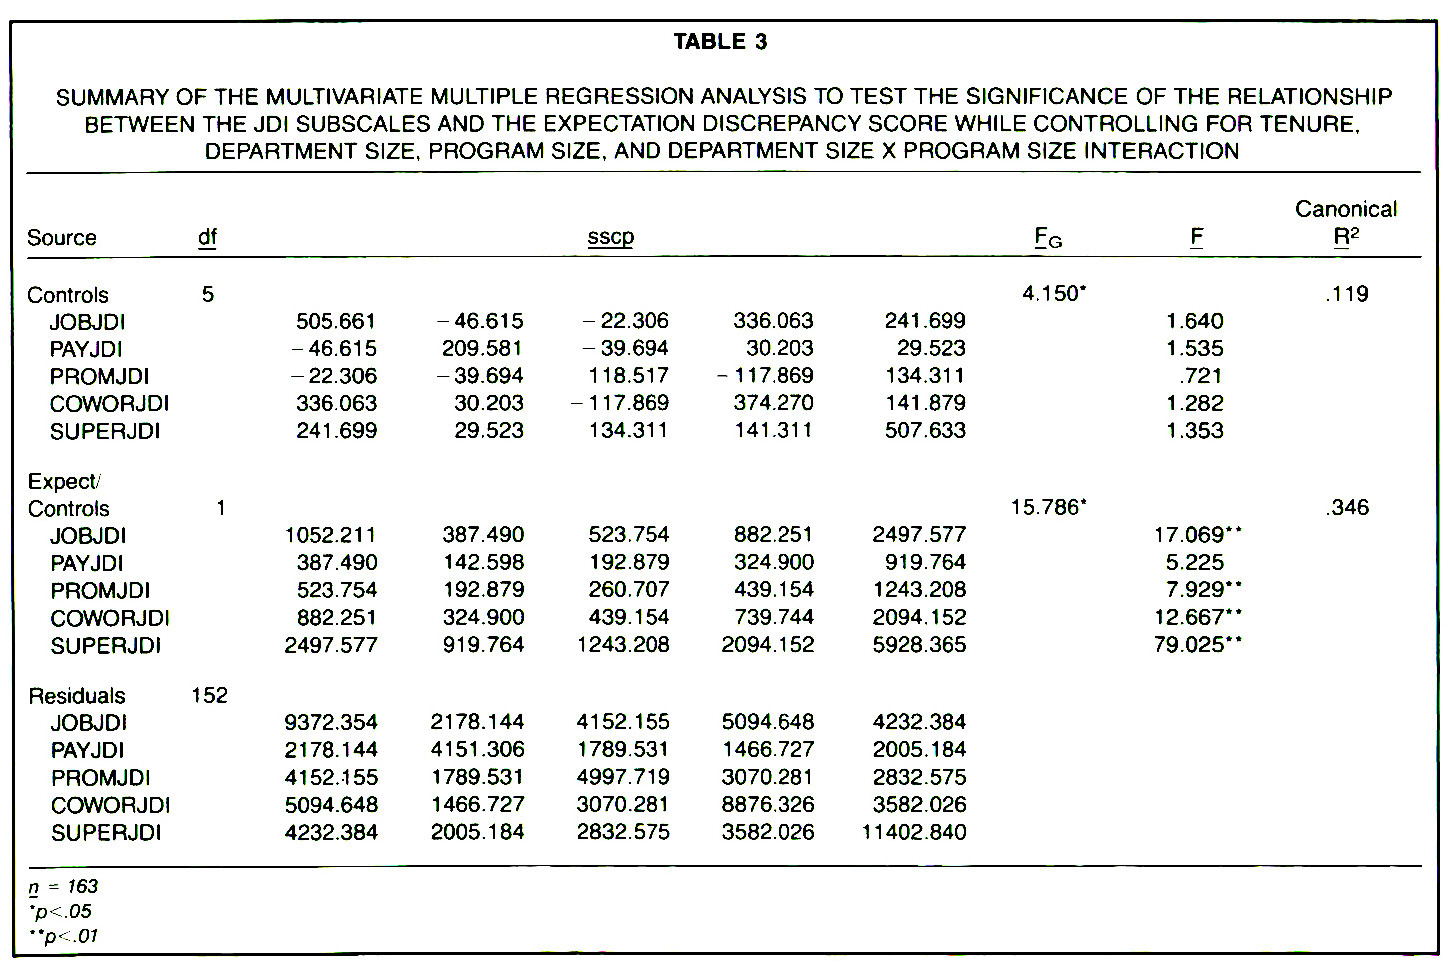 TABLE 3SUMMARY OF THE MULTIVARIATE MULTIPLE REGRESSION ANALYSIS TO TEST THE SIGNIFICANCE OF THE RELATIONSHIP BETWEEN THE JDI SUBSCALES AND THE EXPECTATION DISCREPANCY SCORE WHILE CONTROLLING FOR TENURE, DEPARTMENT SIZE, PROGRAM SIZE, AND DEPARTMENT SIZE X PROGRAM SIZE INTERACTION